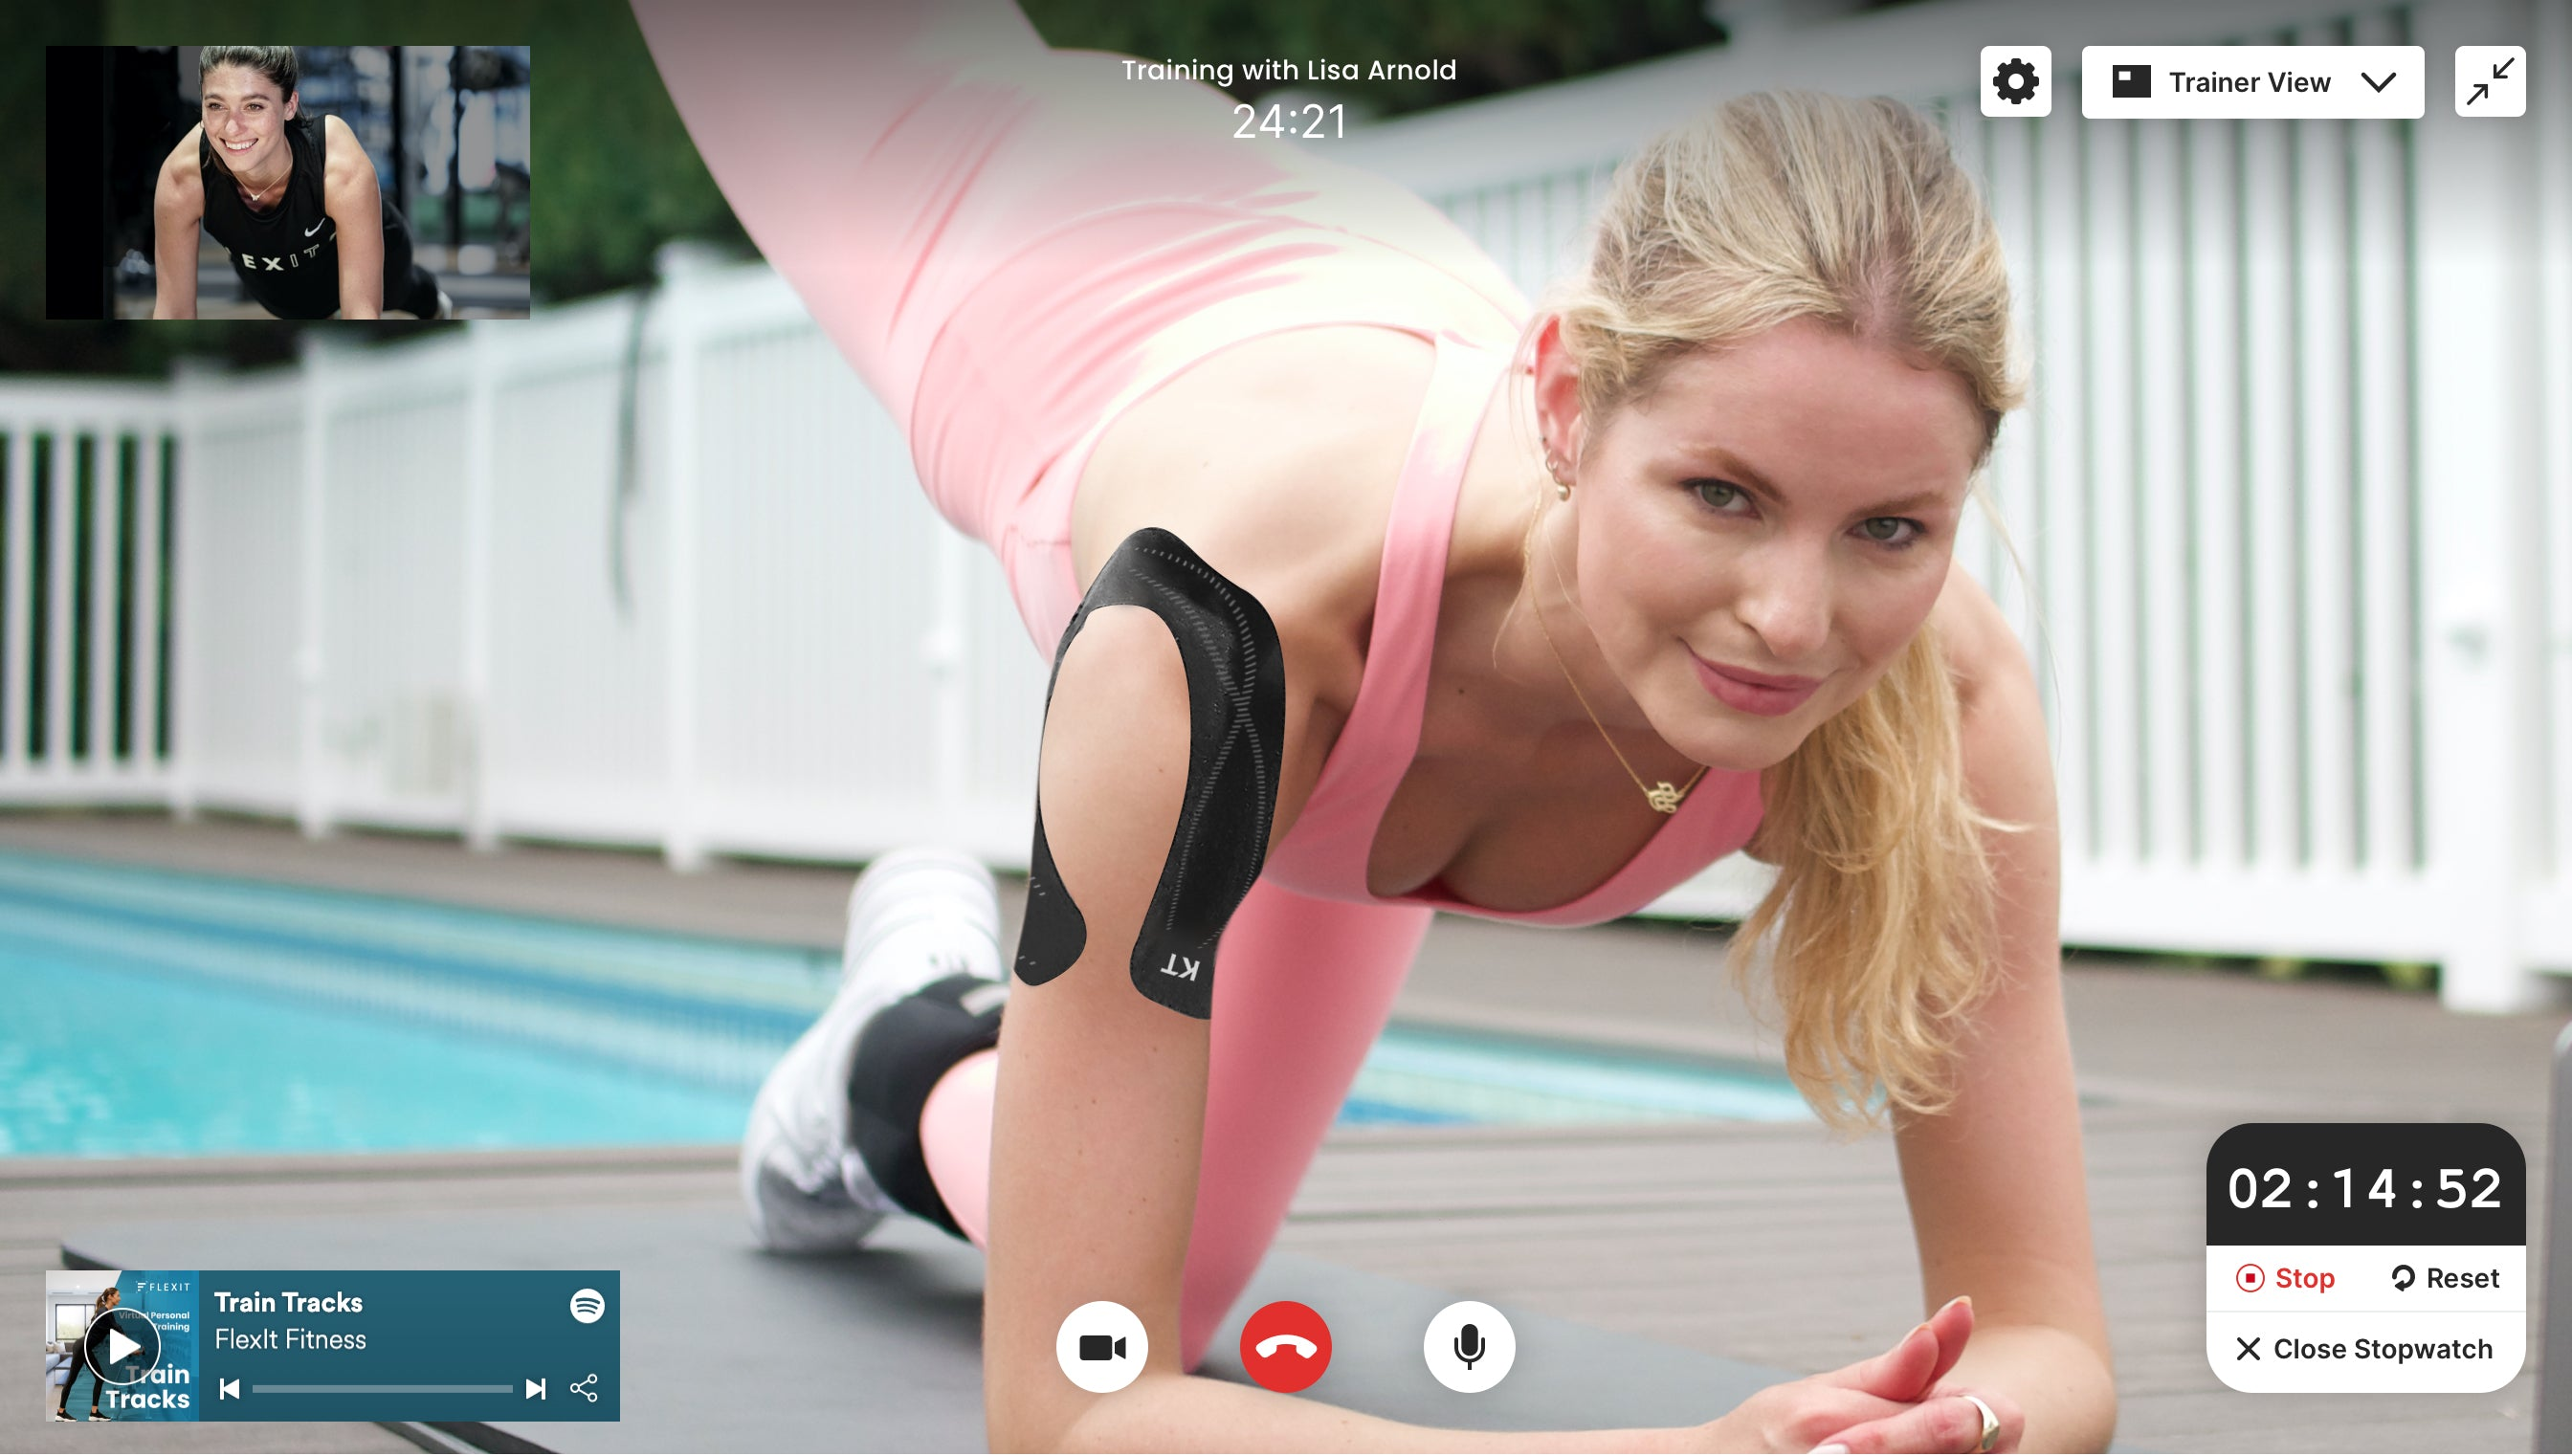 Woman working out by pool virtually with trainer